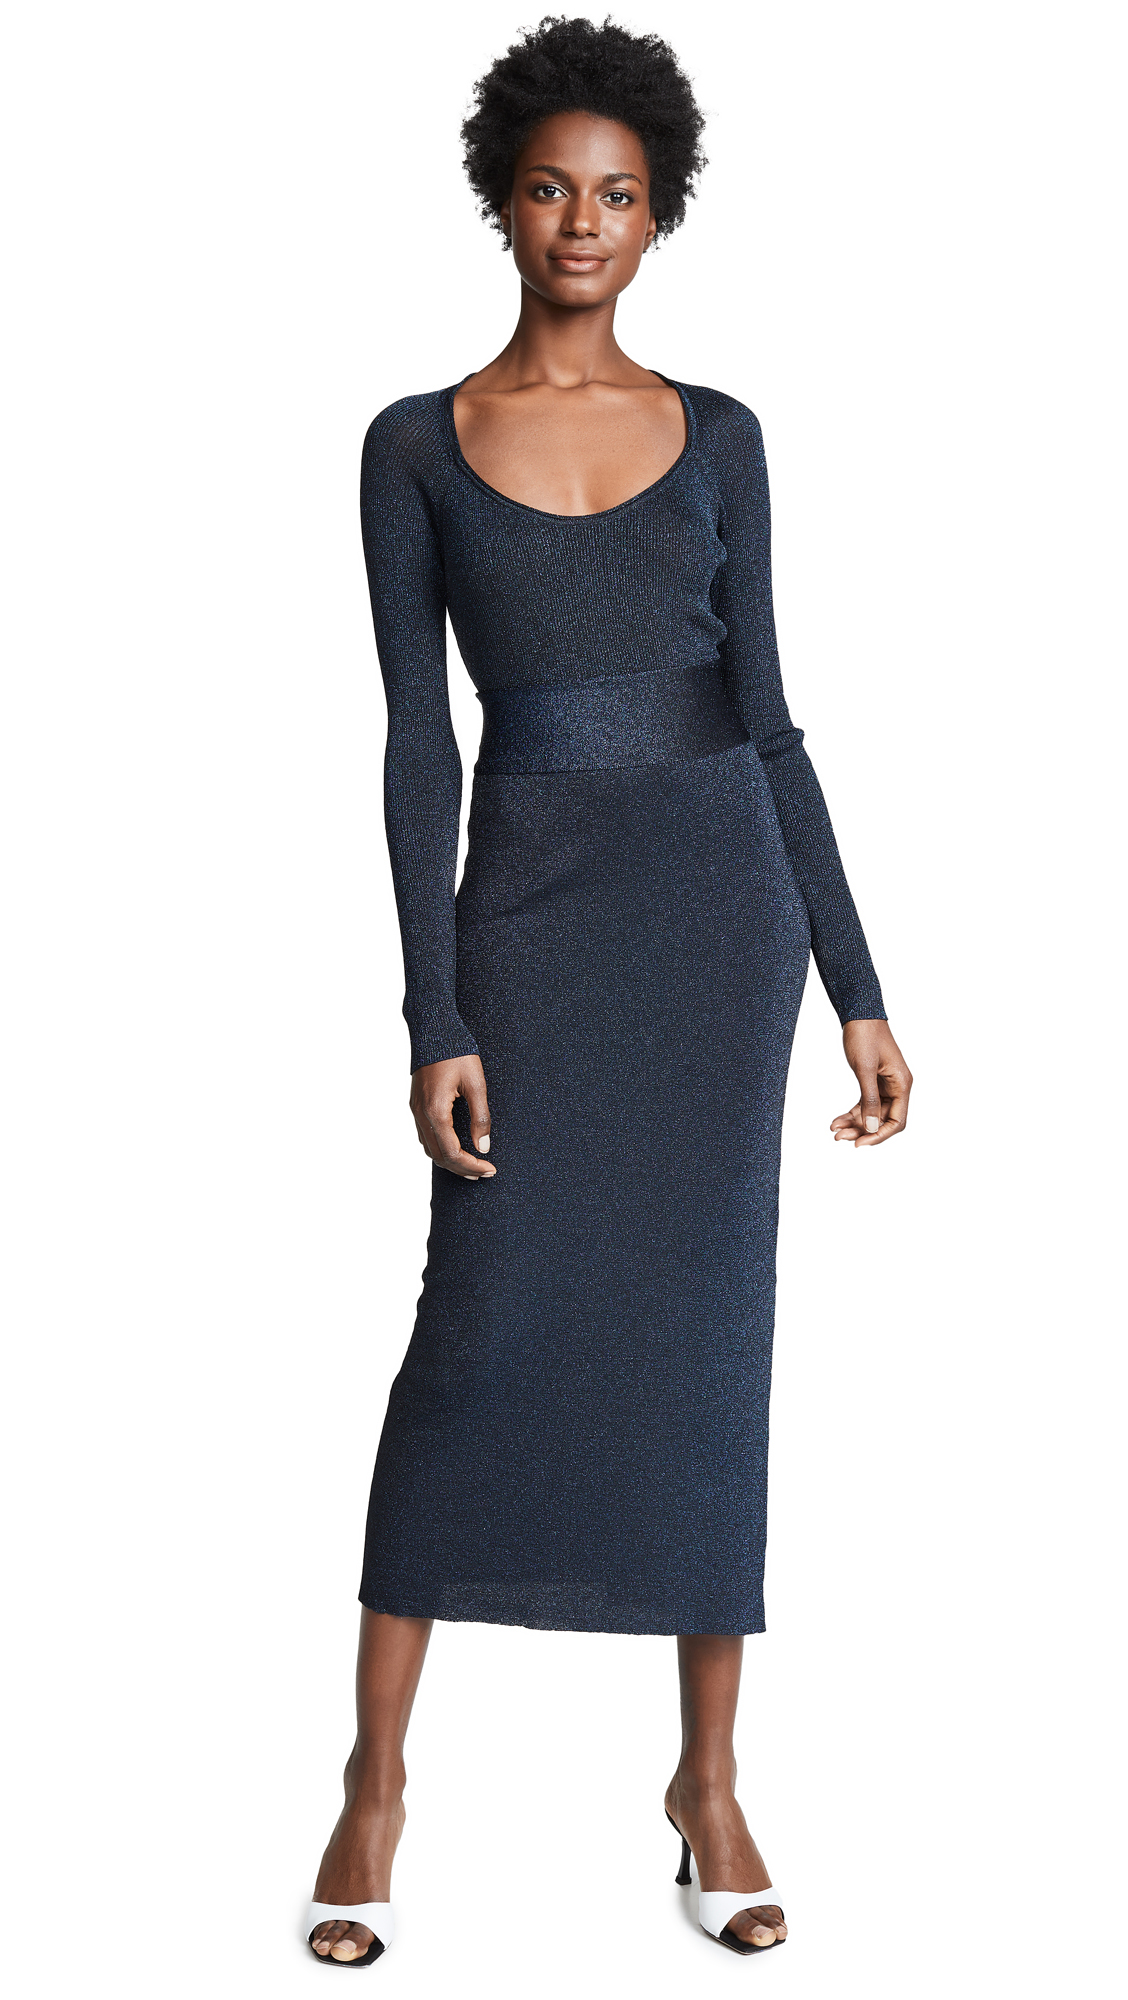 3.1 Phillip Lim Metallic Rib Midi Dress - Navy